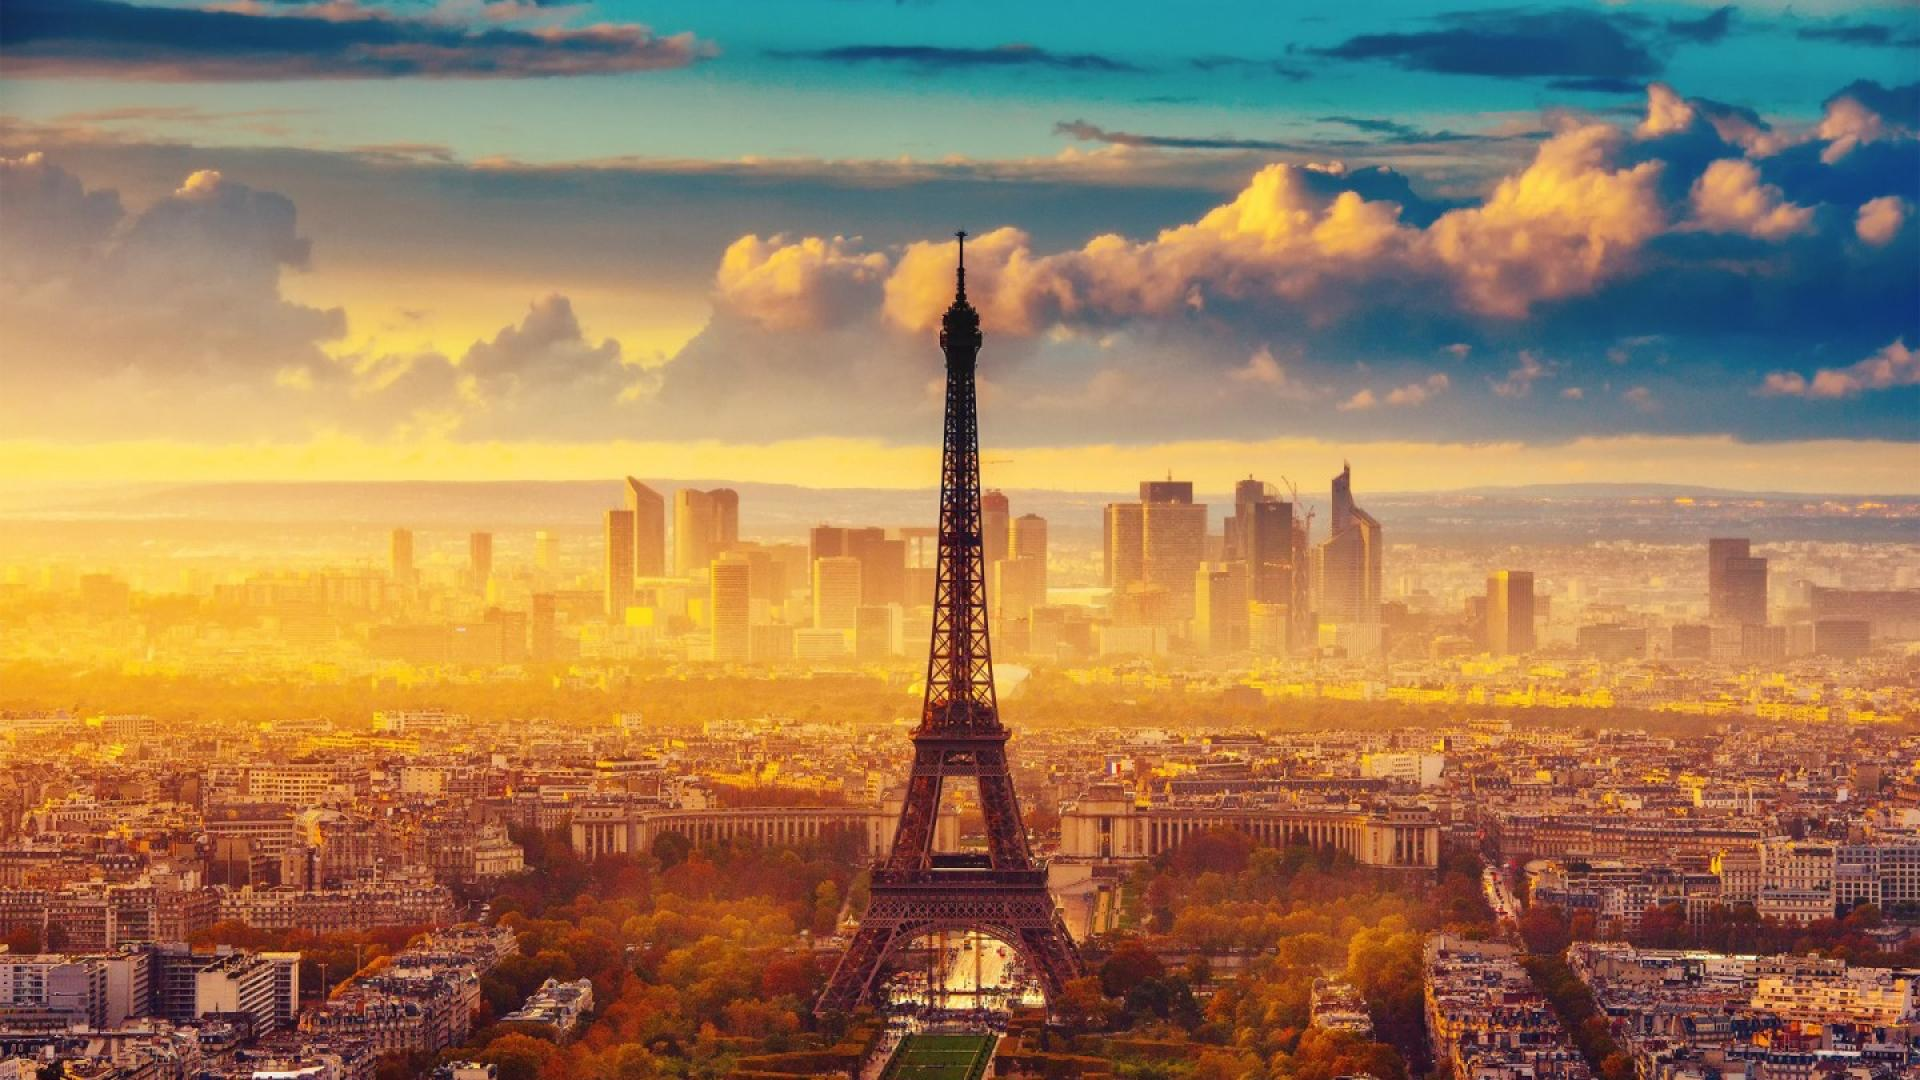 """""""eiffel tower sunset wallpapers hd resolution"""" — card from user KKorastylev in Yandex.Collections"""